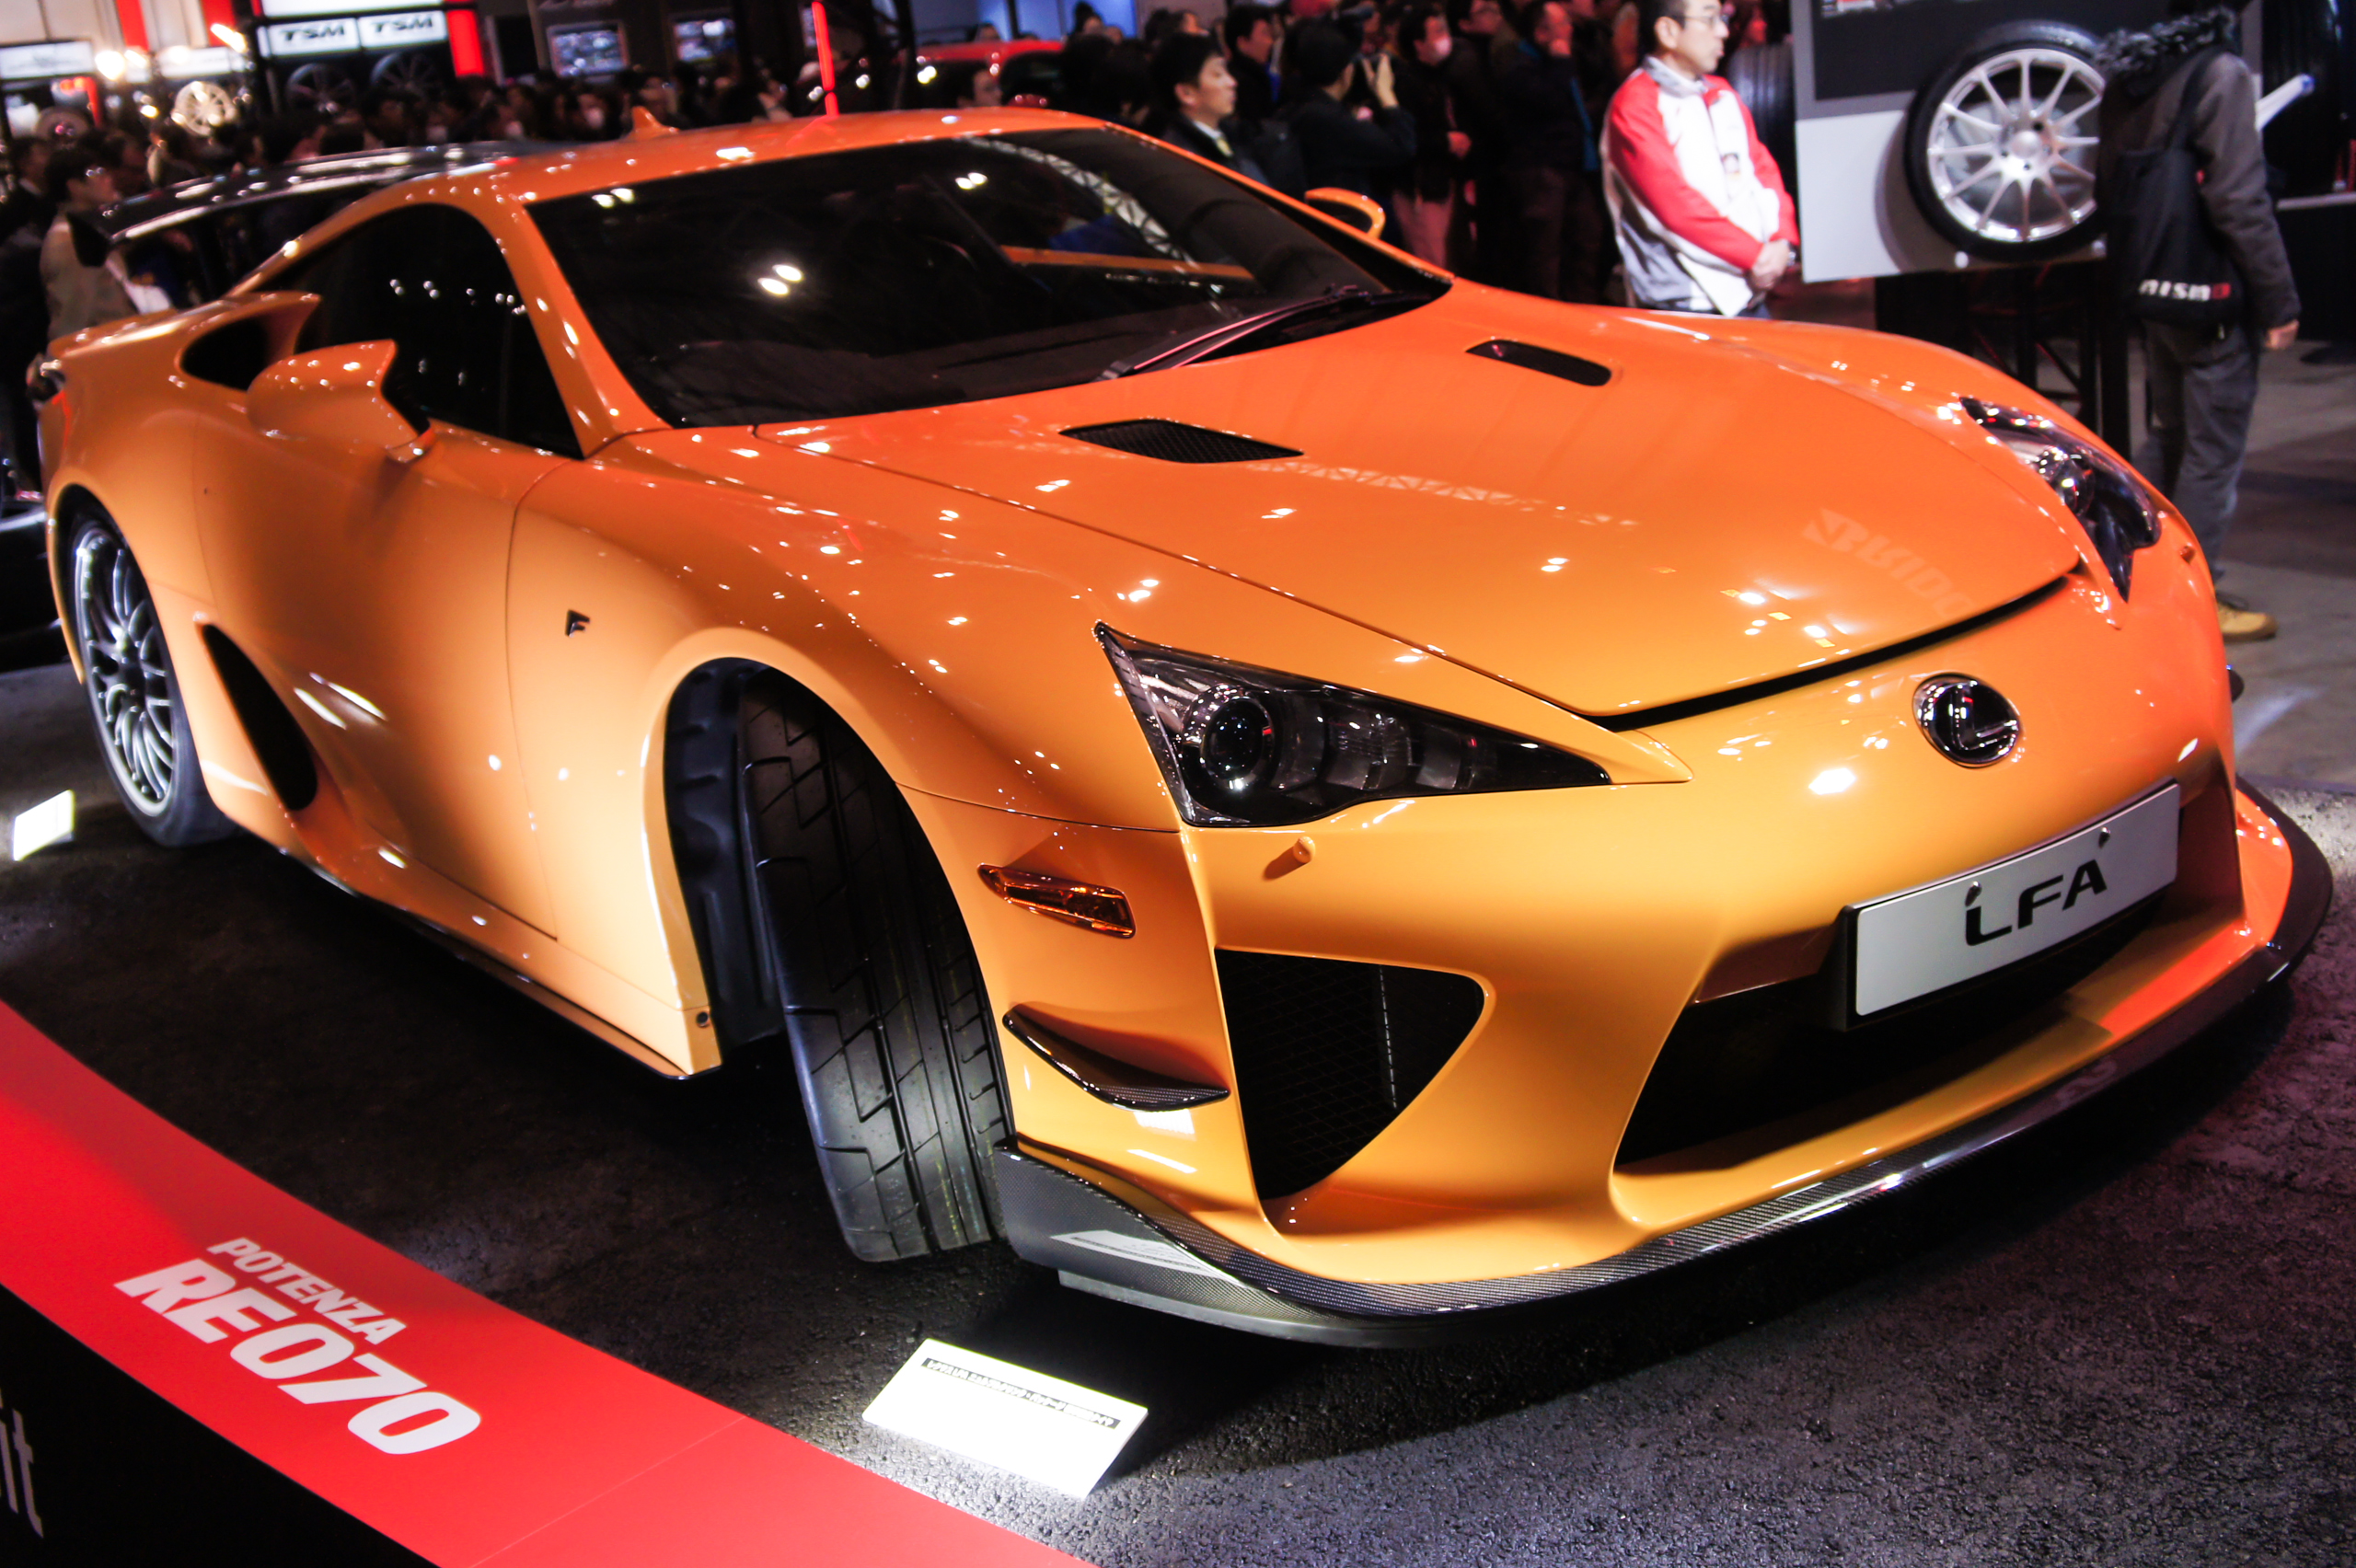 lexus lfa cars news videos images websites wiki lookingthis lexus lfa images